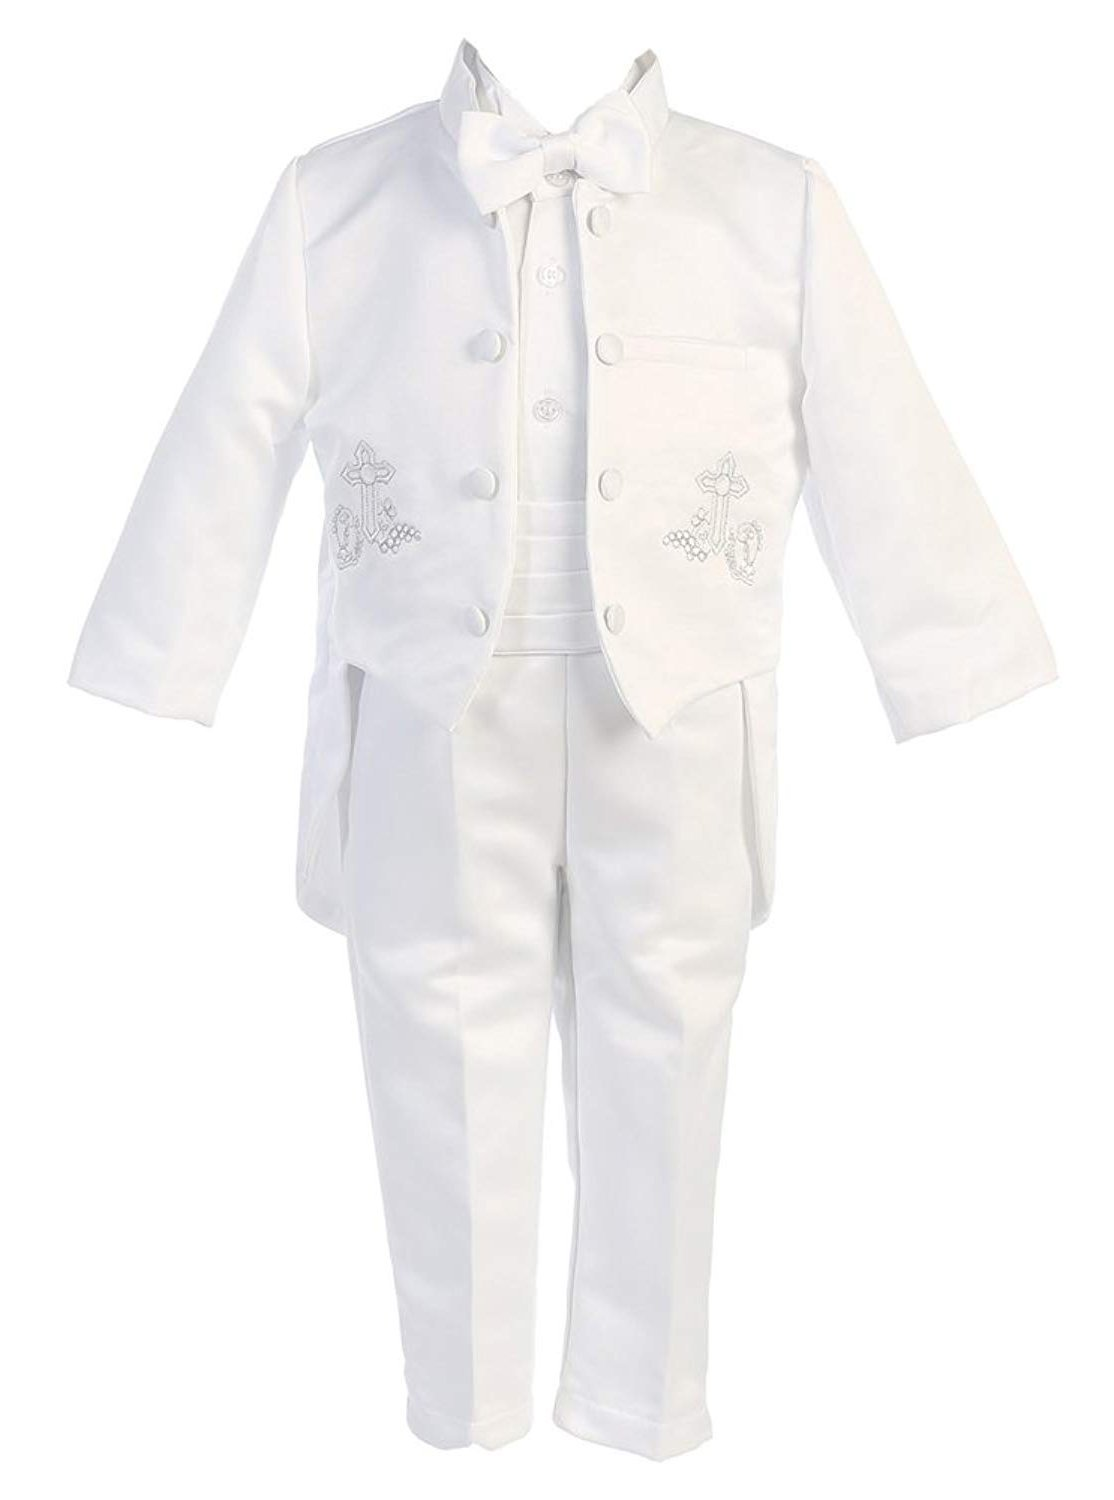 iGilrDress Baby/Toddler/Boys White Baptism Christening Mandarin Collar Tail 5 pcs Tuxedo with Cross Embroidery